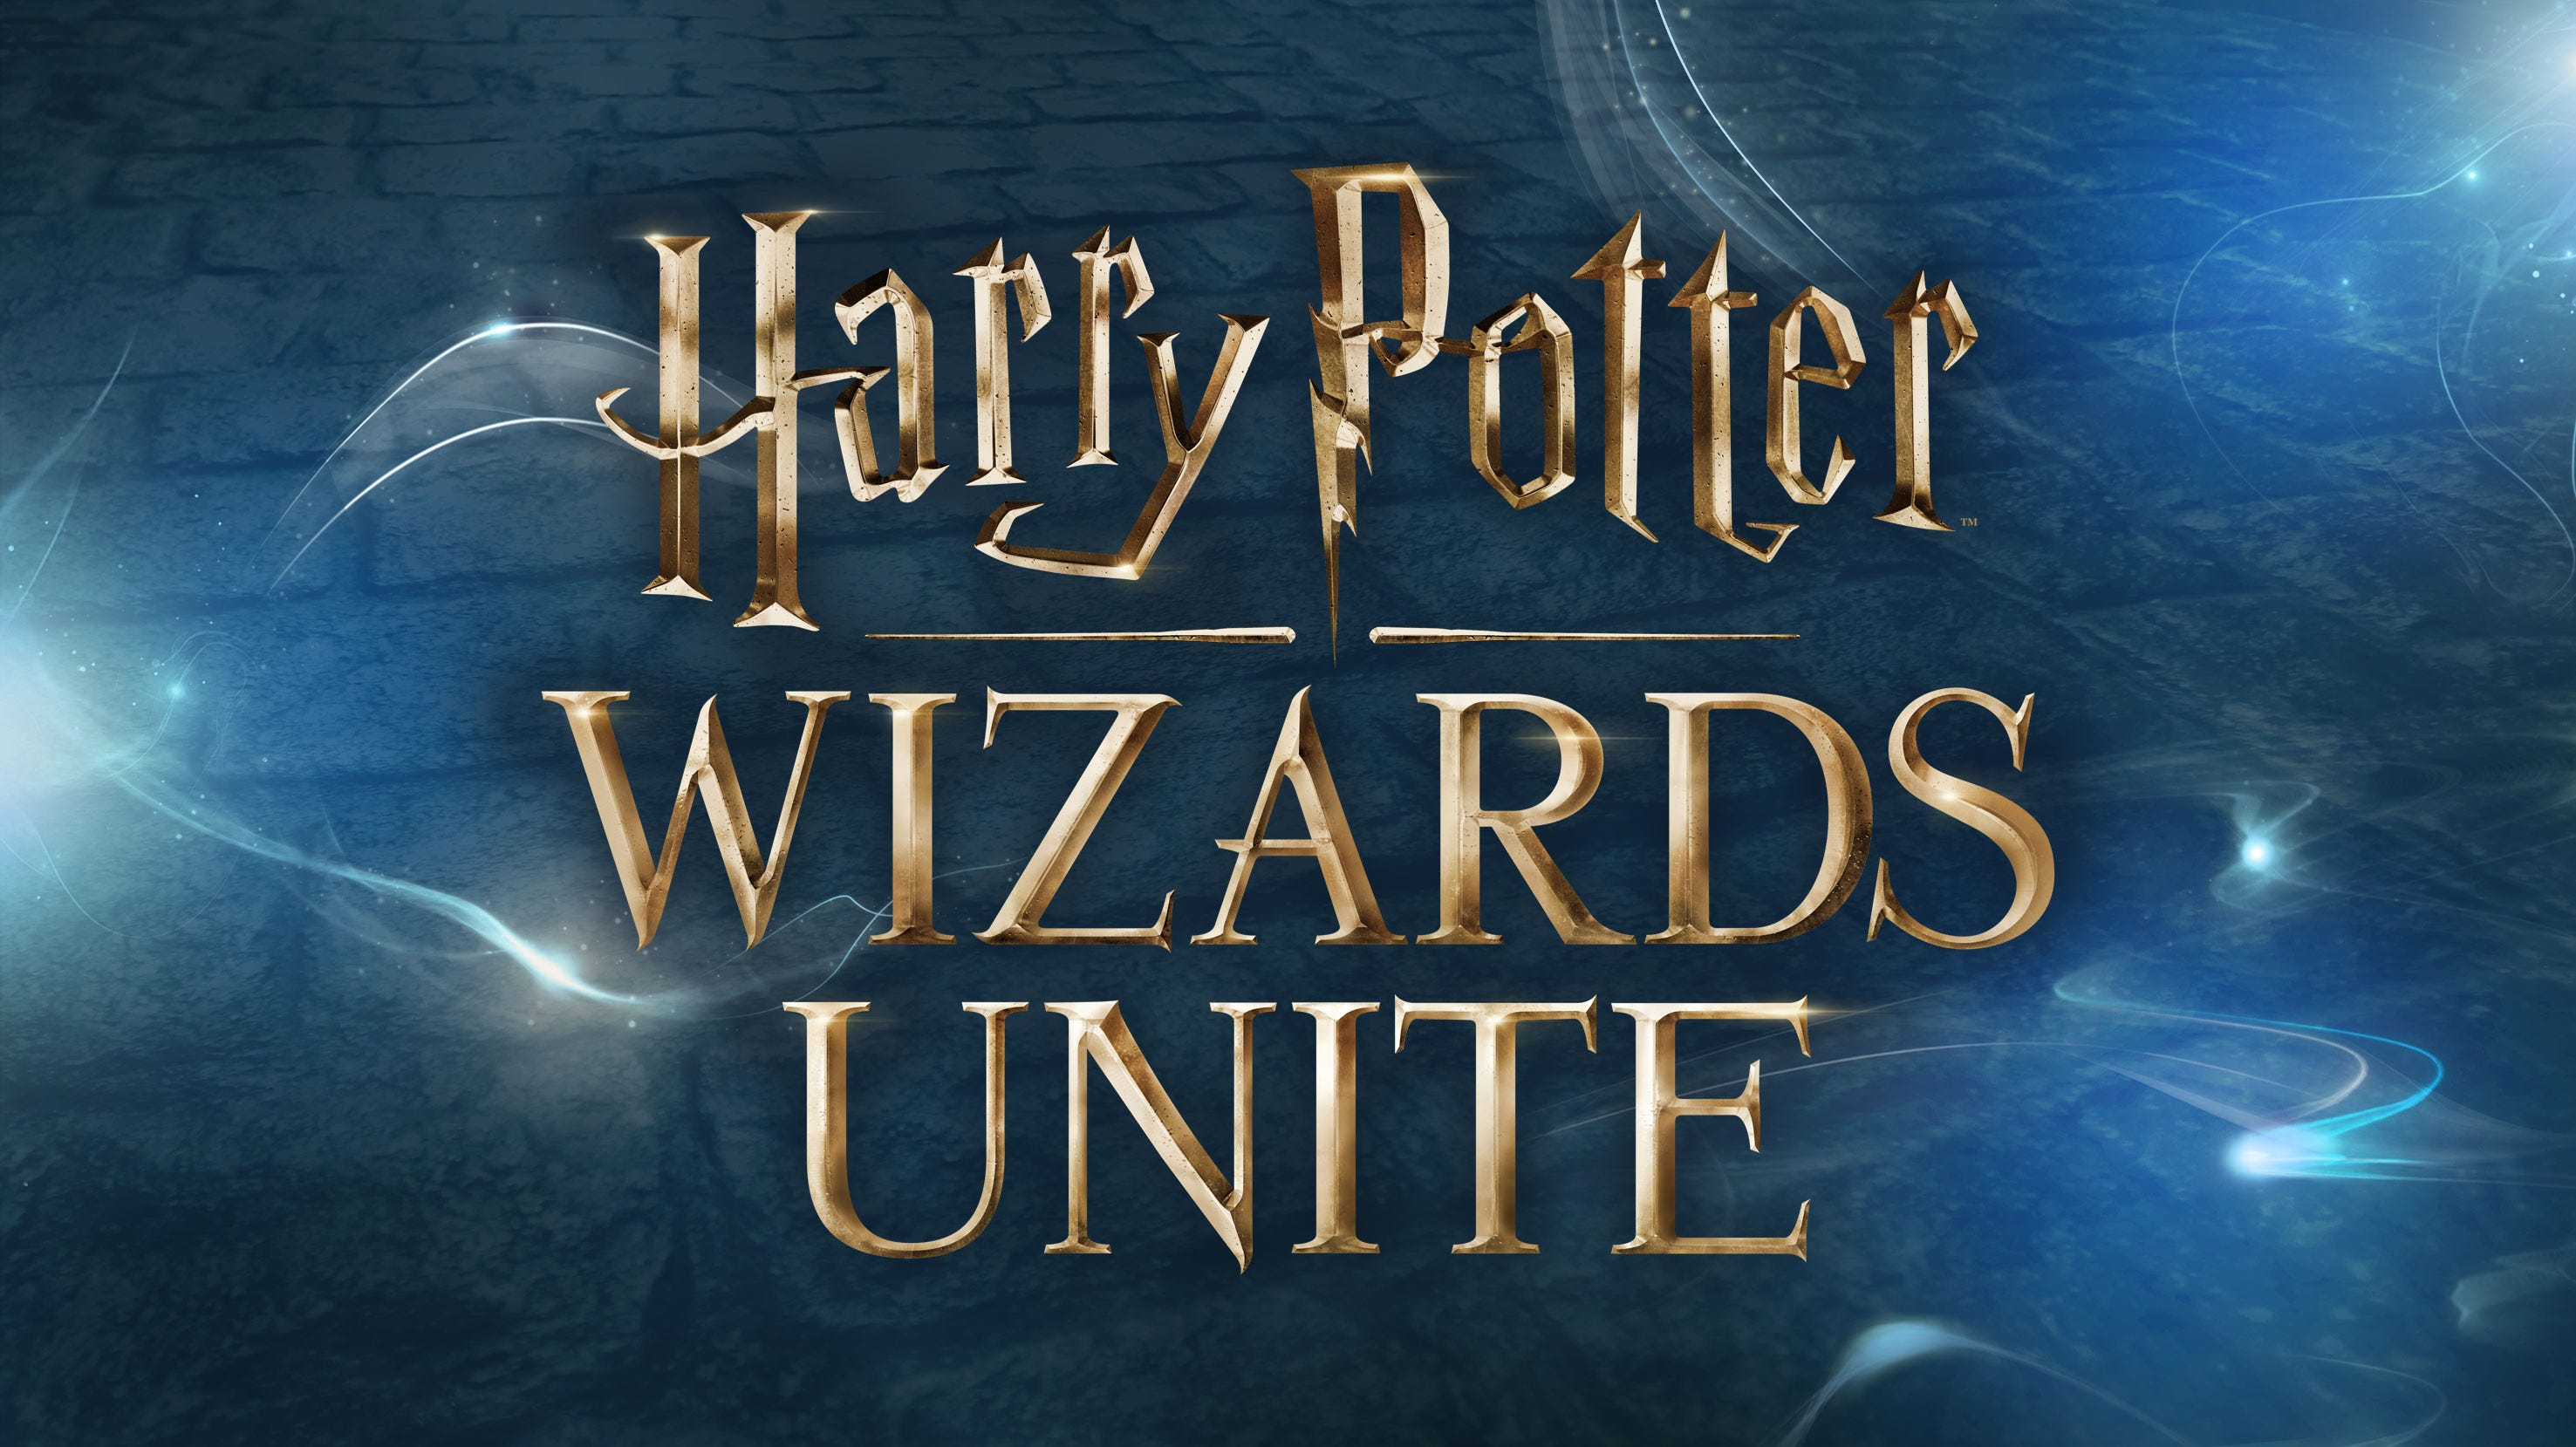 Logo reading 'Harry Potter Wizards Unite' on a stormy cloudy background.